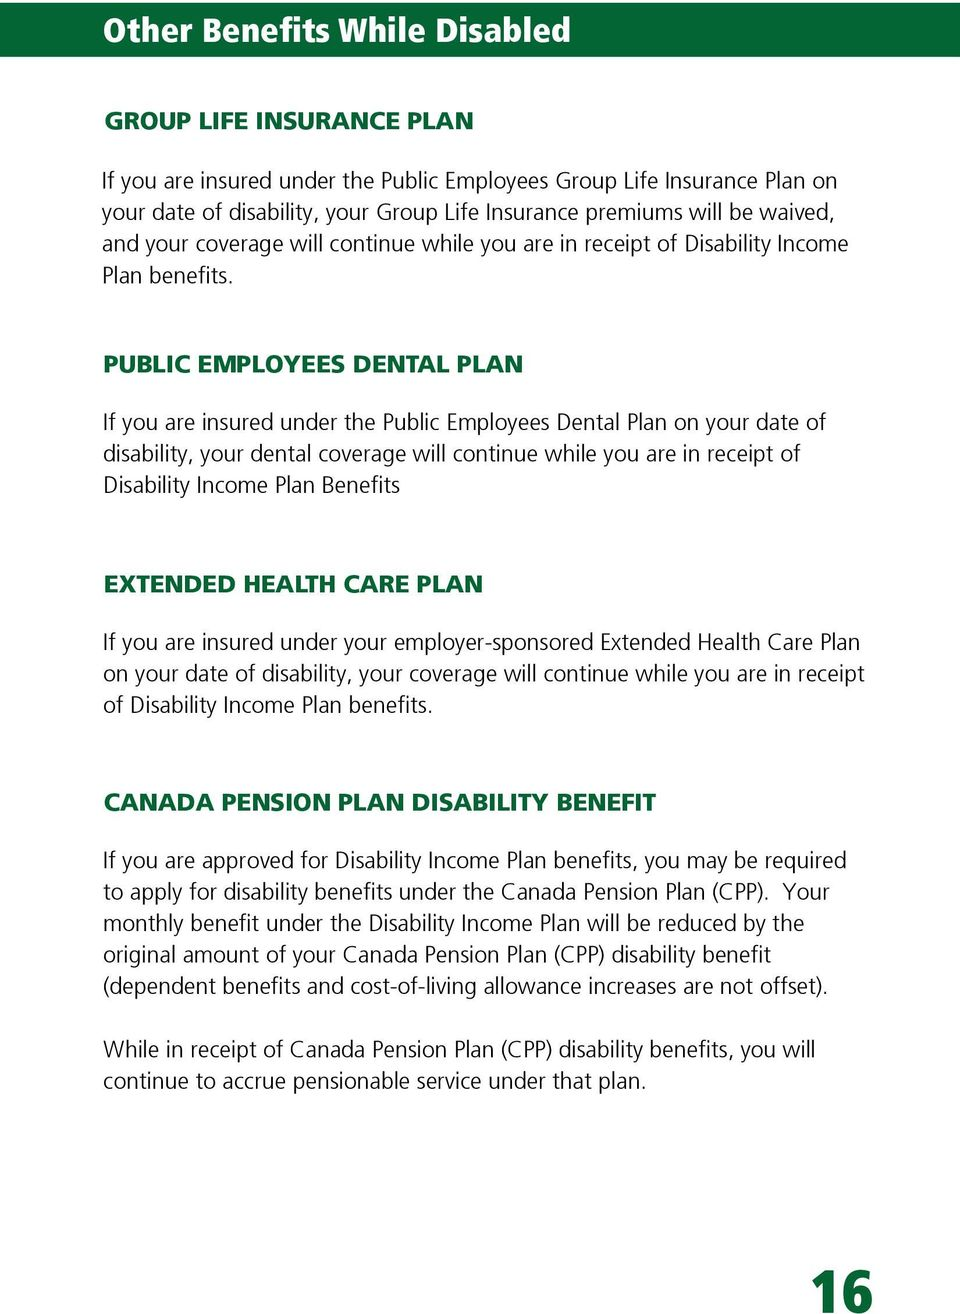 PUBLIC EMPLOYEES DENTAL PLAN If you are insured under the Public Employees Dental Plan on your date of disability, your dental coverage will continue while you are in receipt of Disability Income